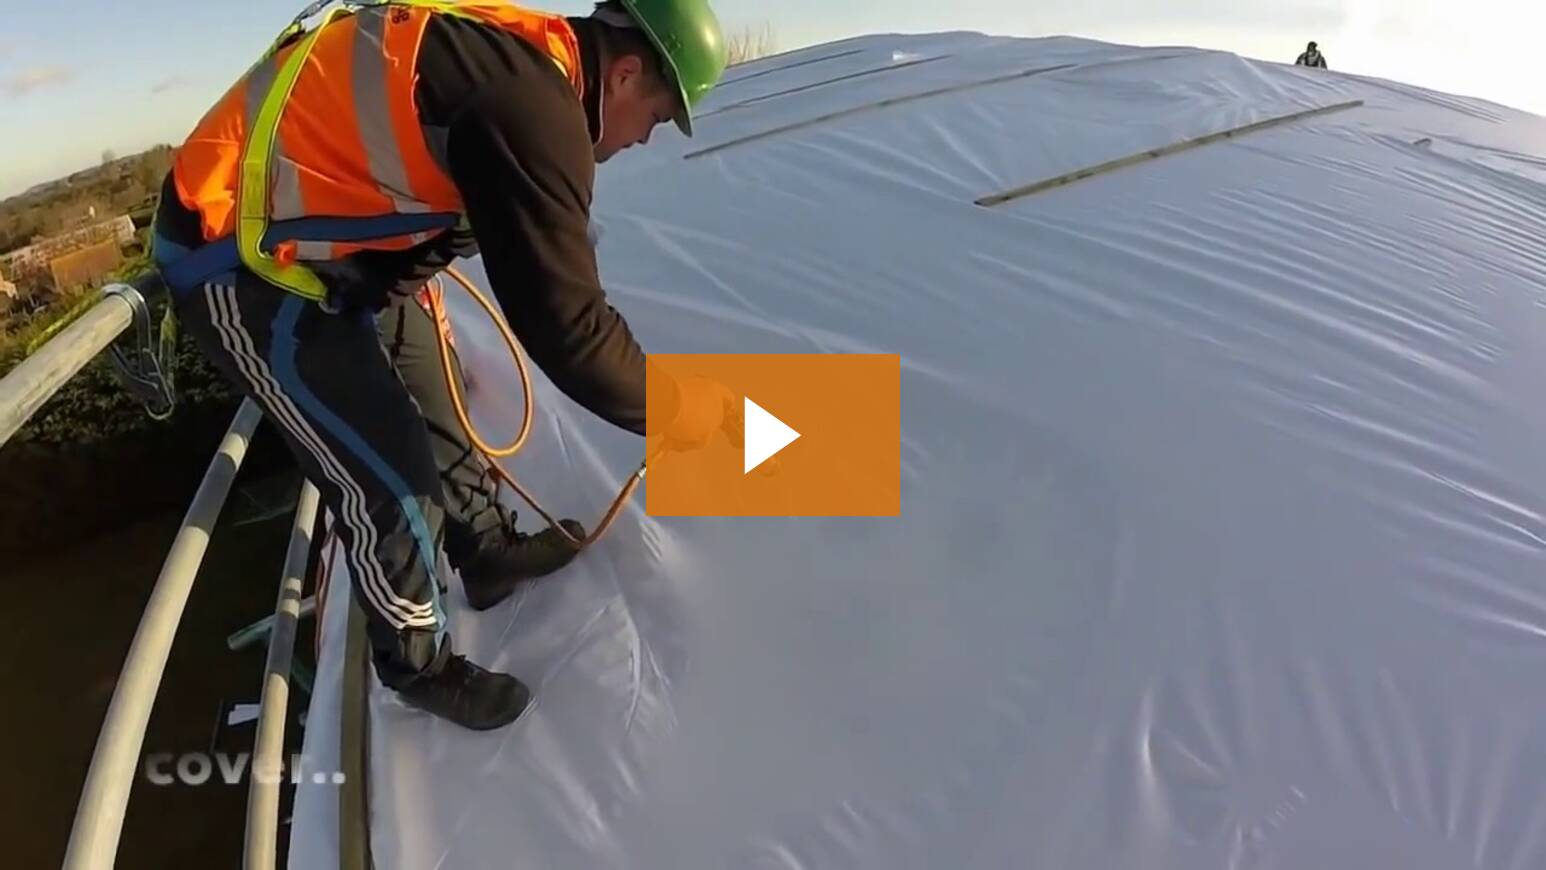 Scaffold Shrink Wrap Training Course - Applying The Skills On Site